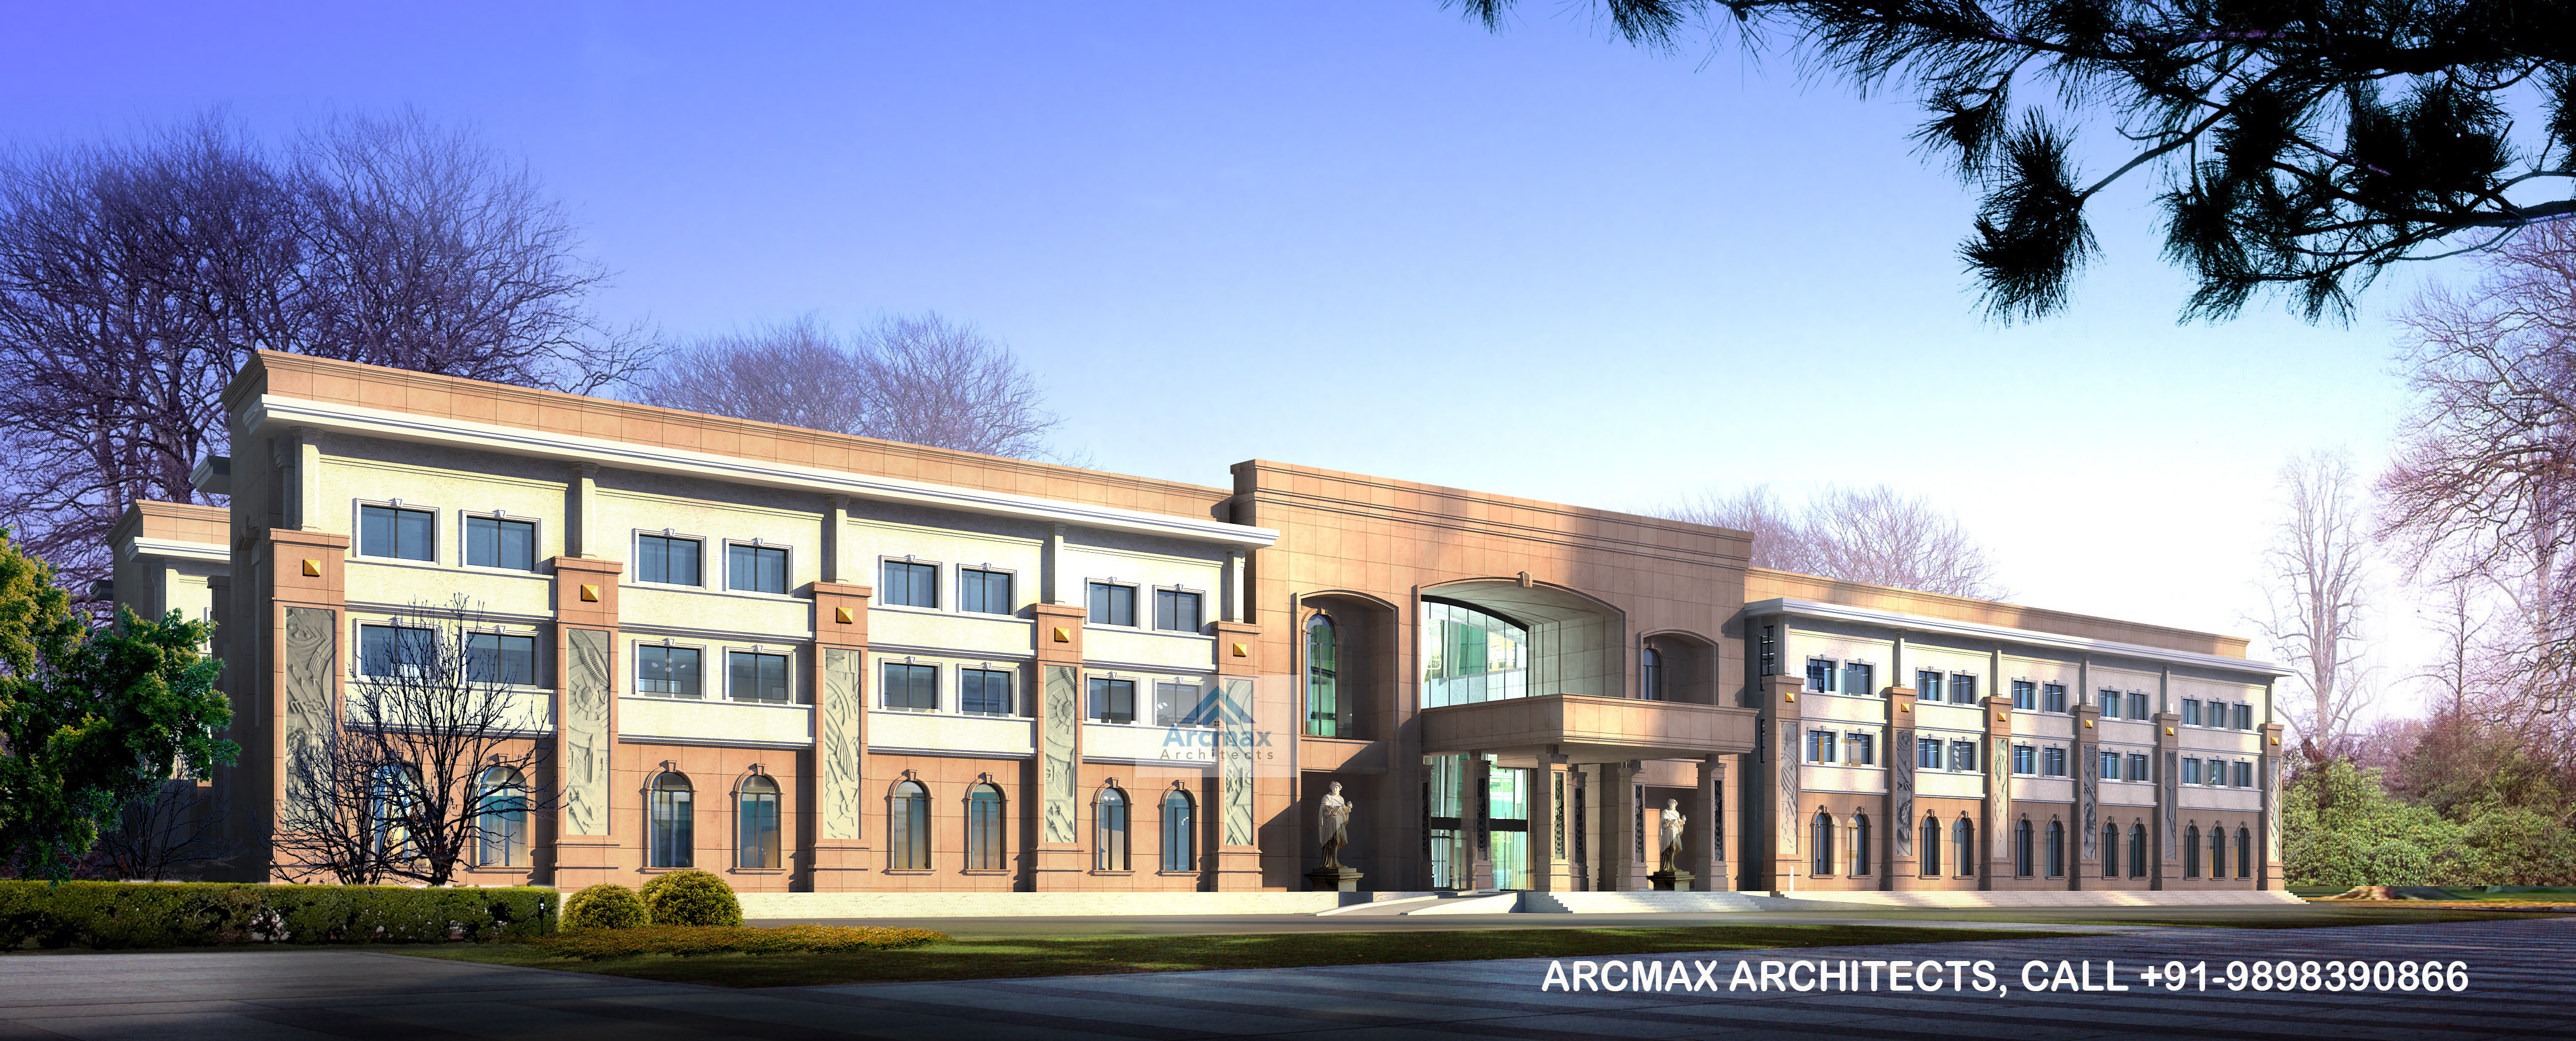 International school design services buy online arcmax for Online architects for hire